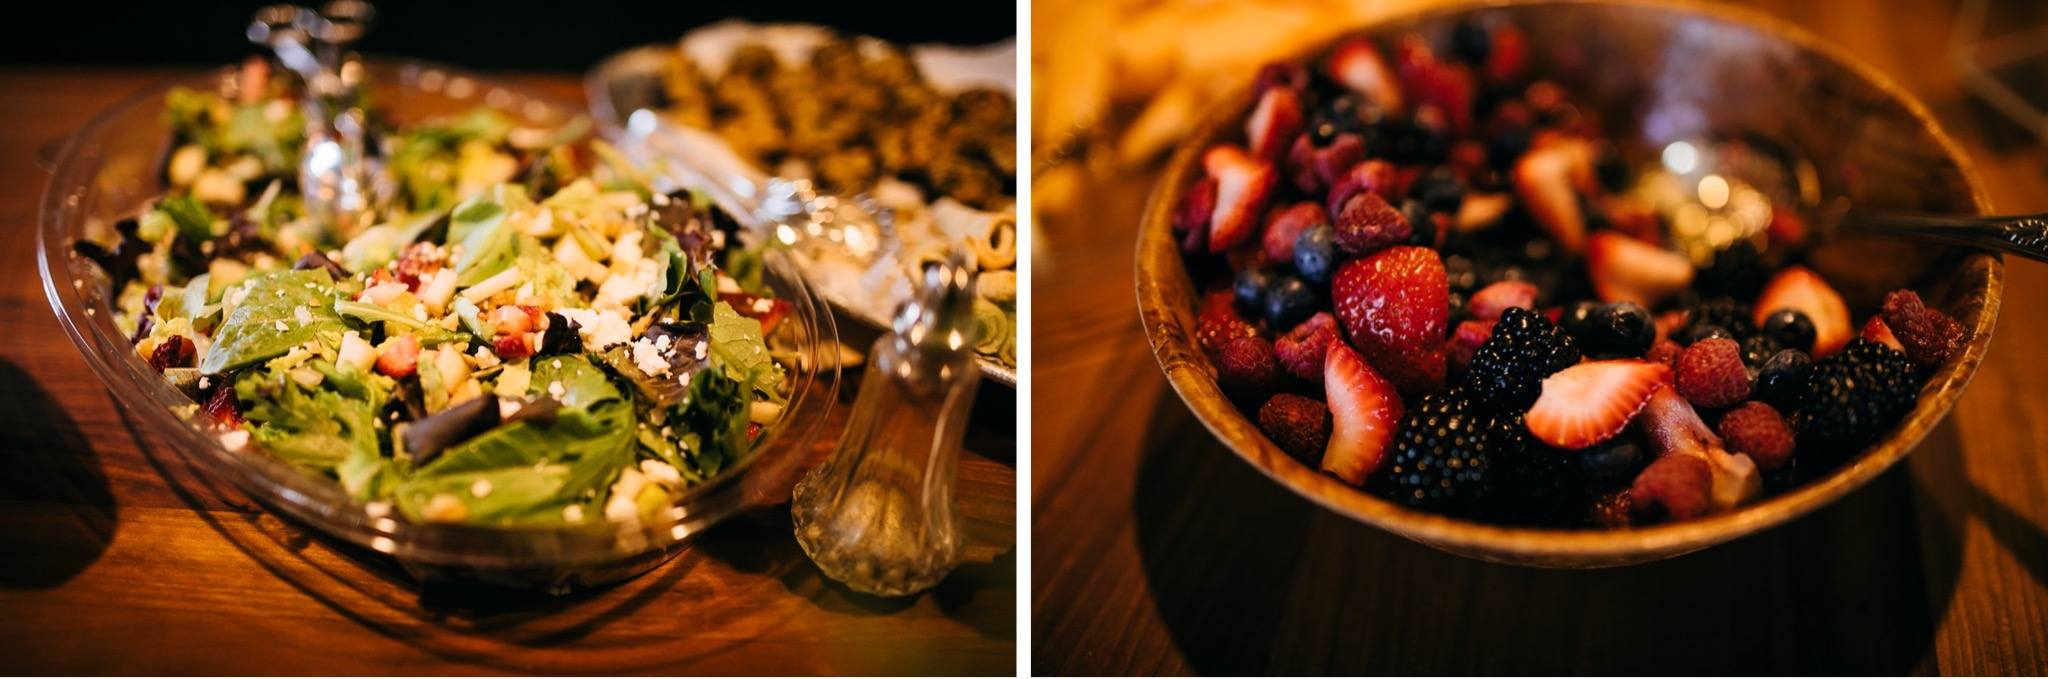 bowls of mixed fruit and green salad